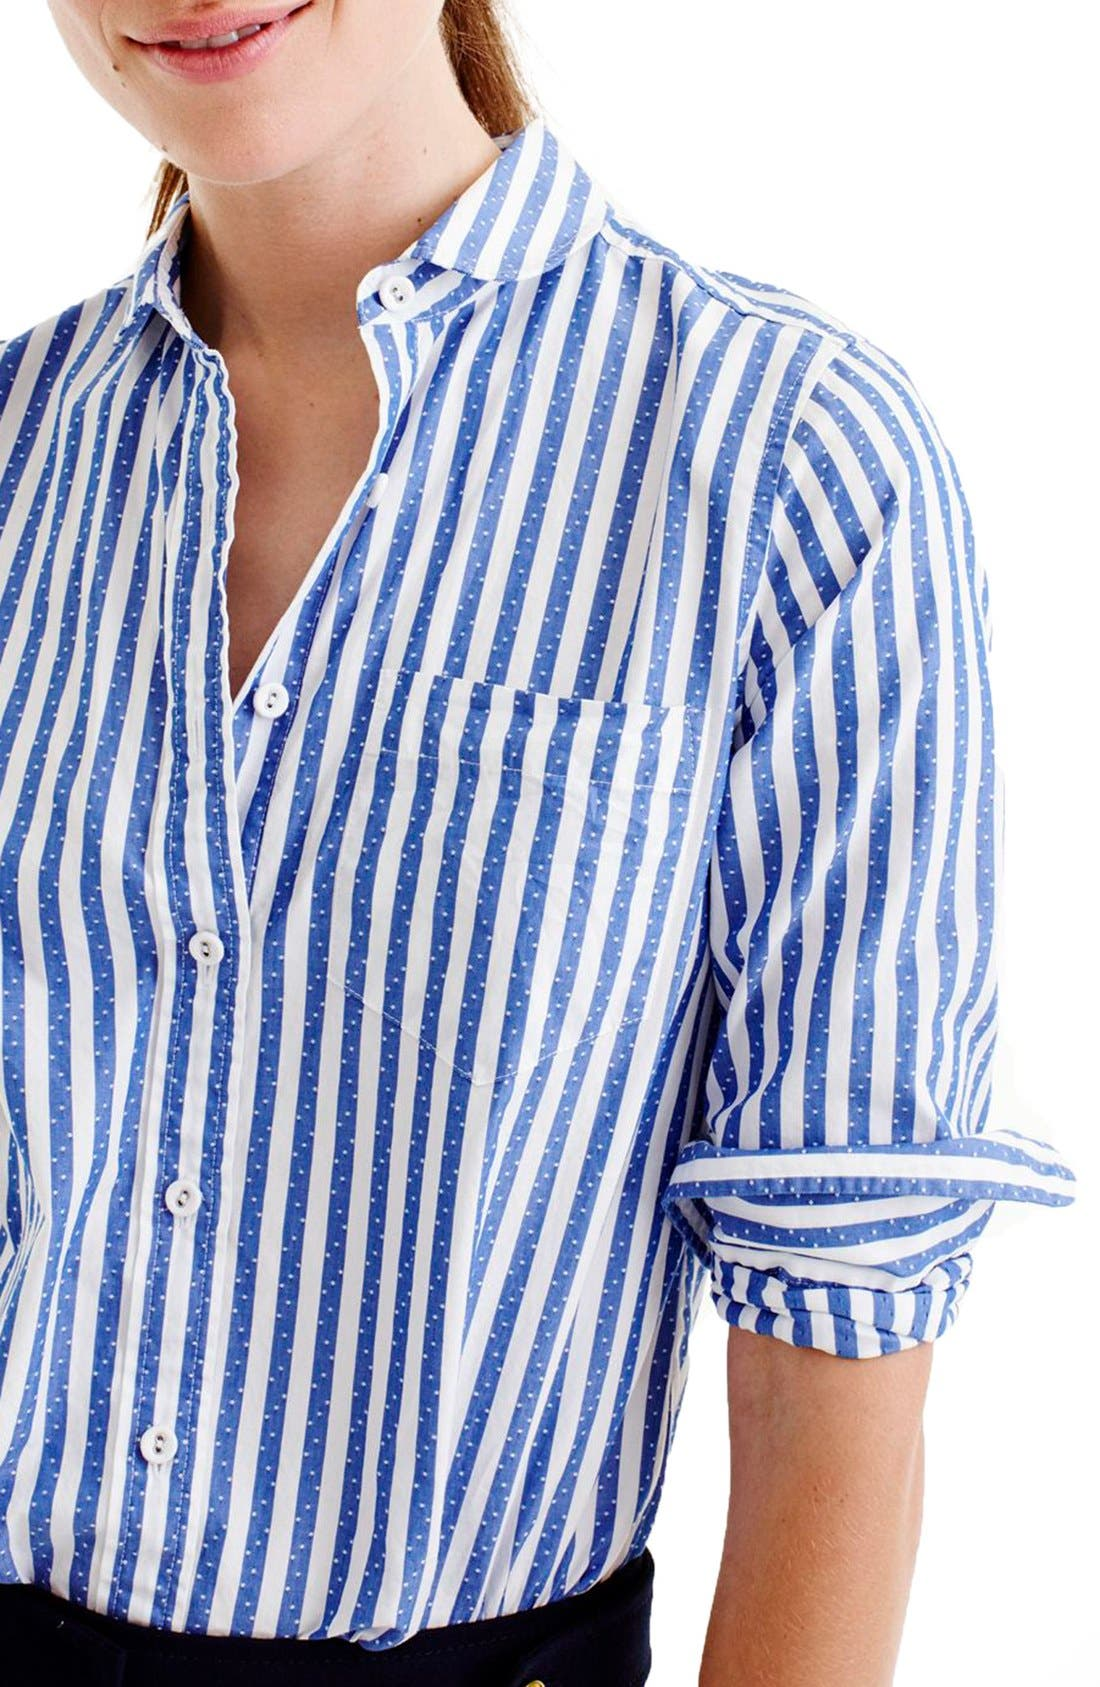 Alternate Image 3  - J.Crew Club Collar Jacquard Stripe Boy Shirt (Regular & Petite)